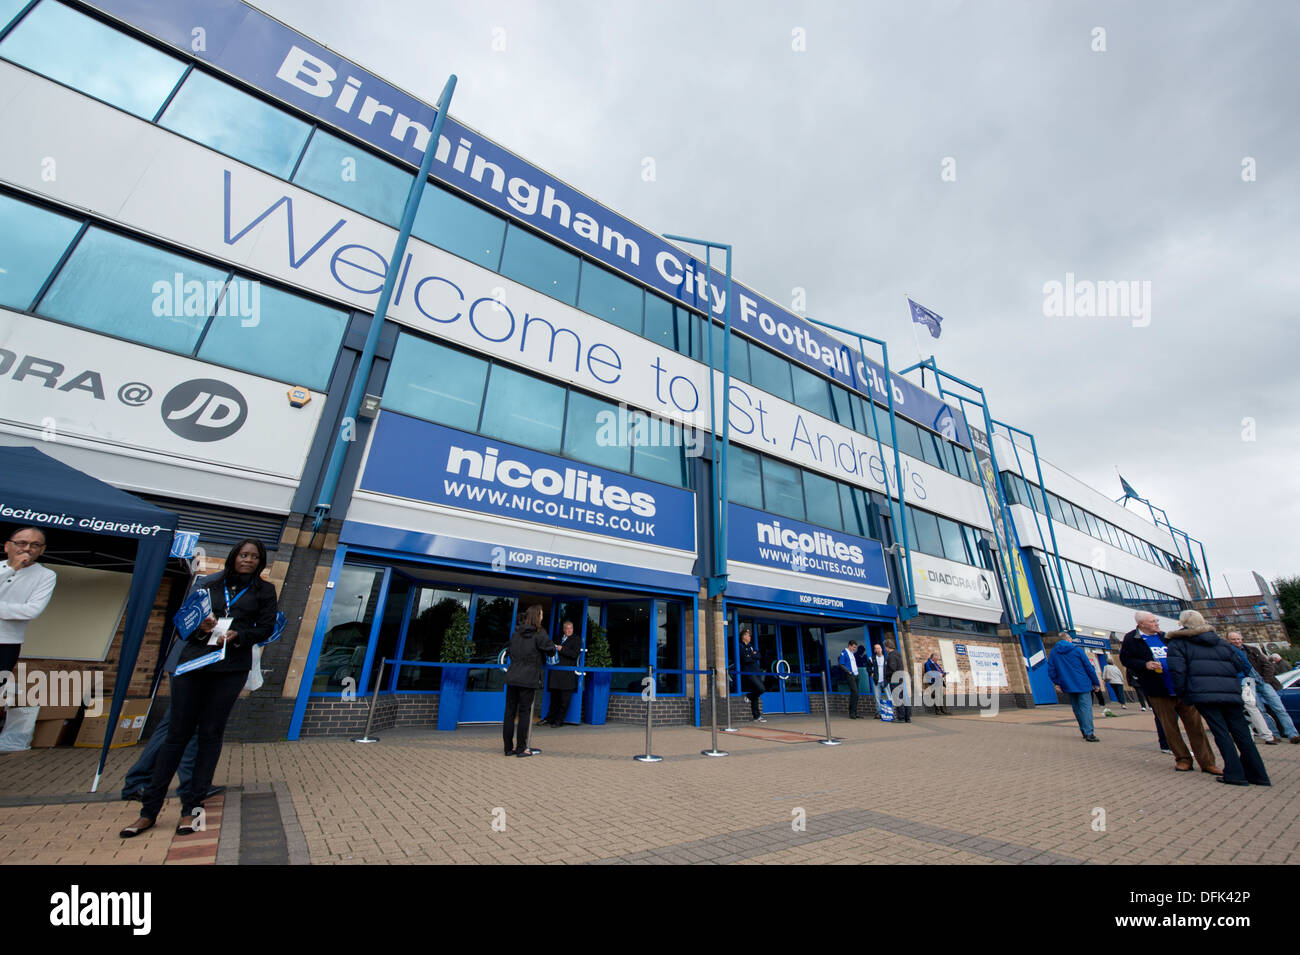 Fans outside St Andrew's stadium, home of Birmingham City Football Club. - Stock Image